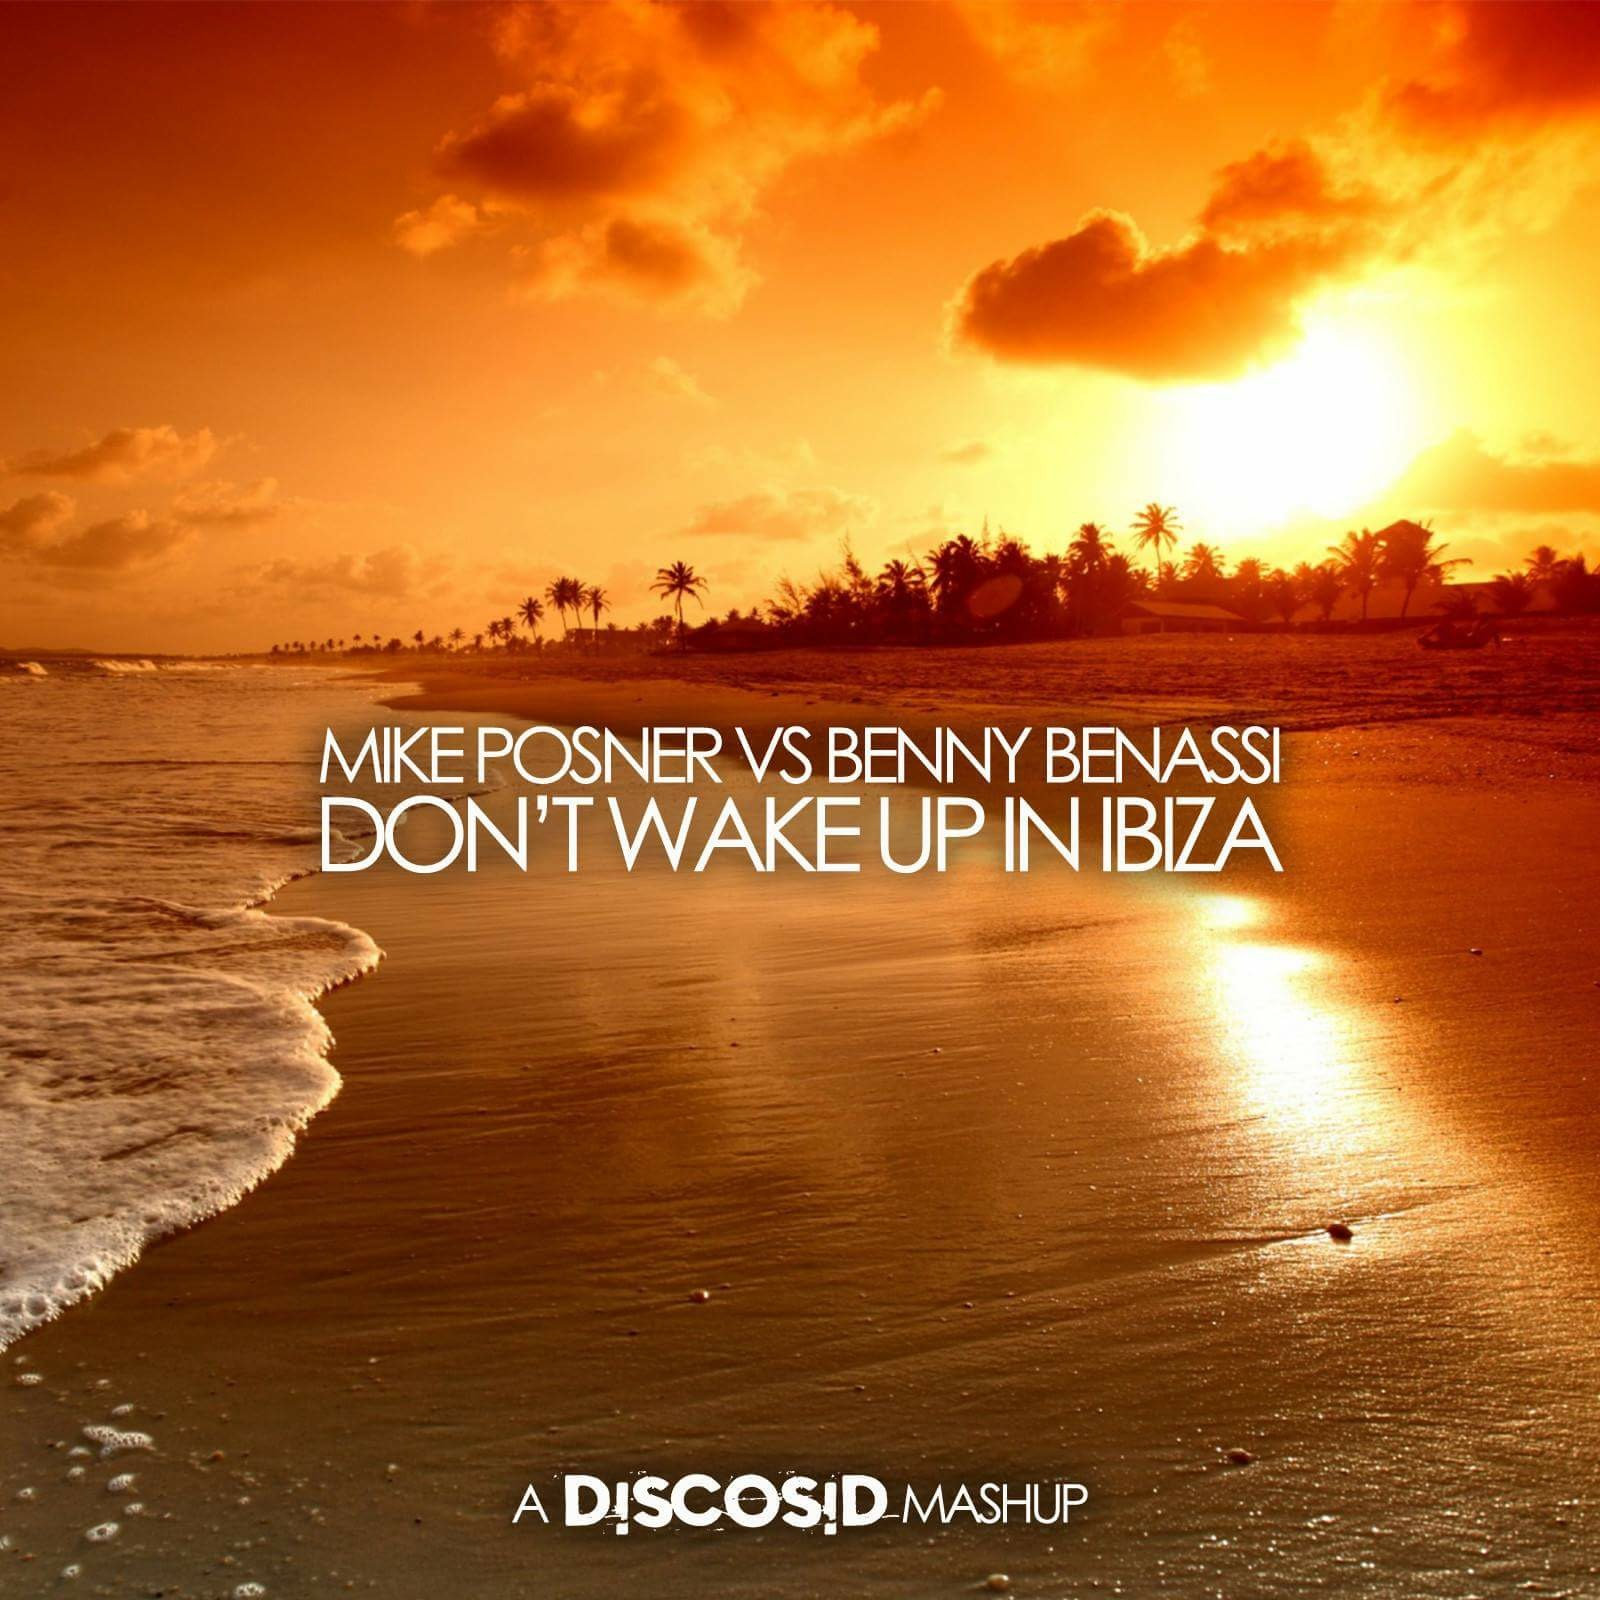 Mike Posner Vs Benny Benassi - Don't Wake Up In Ibiza (Discosid Mashup)